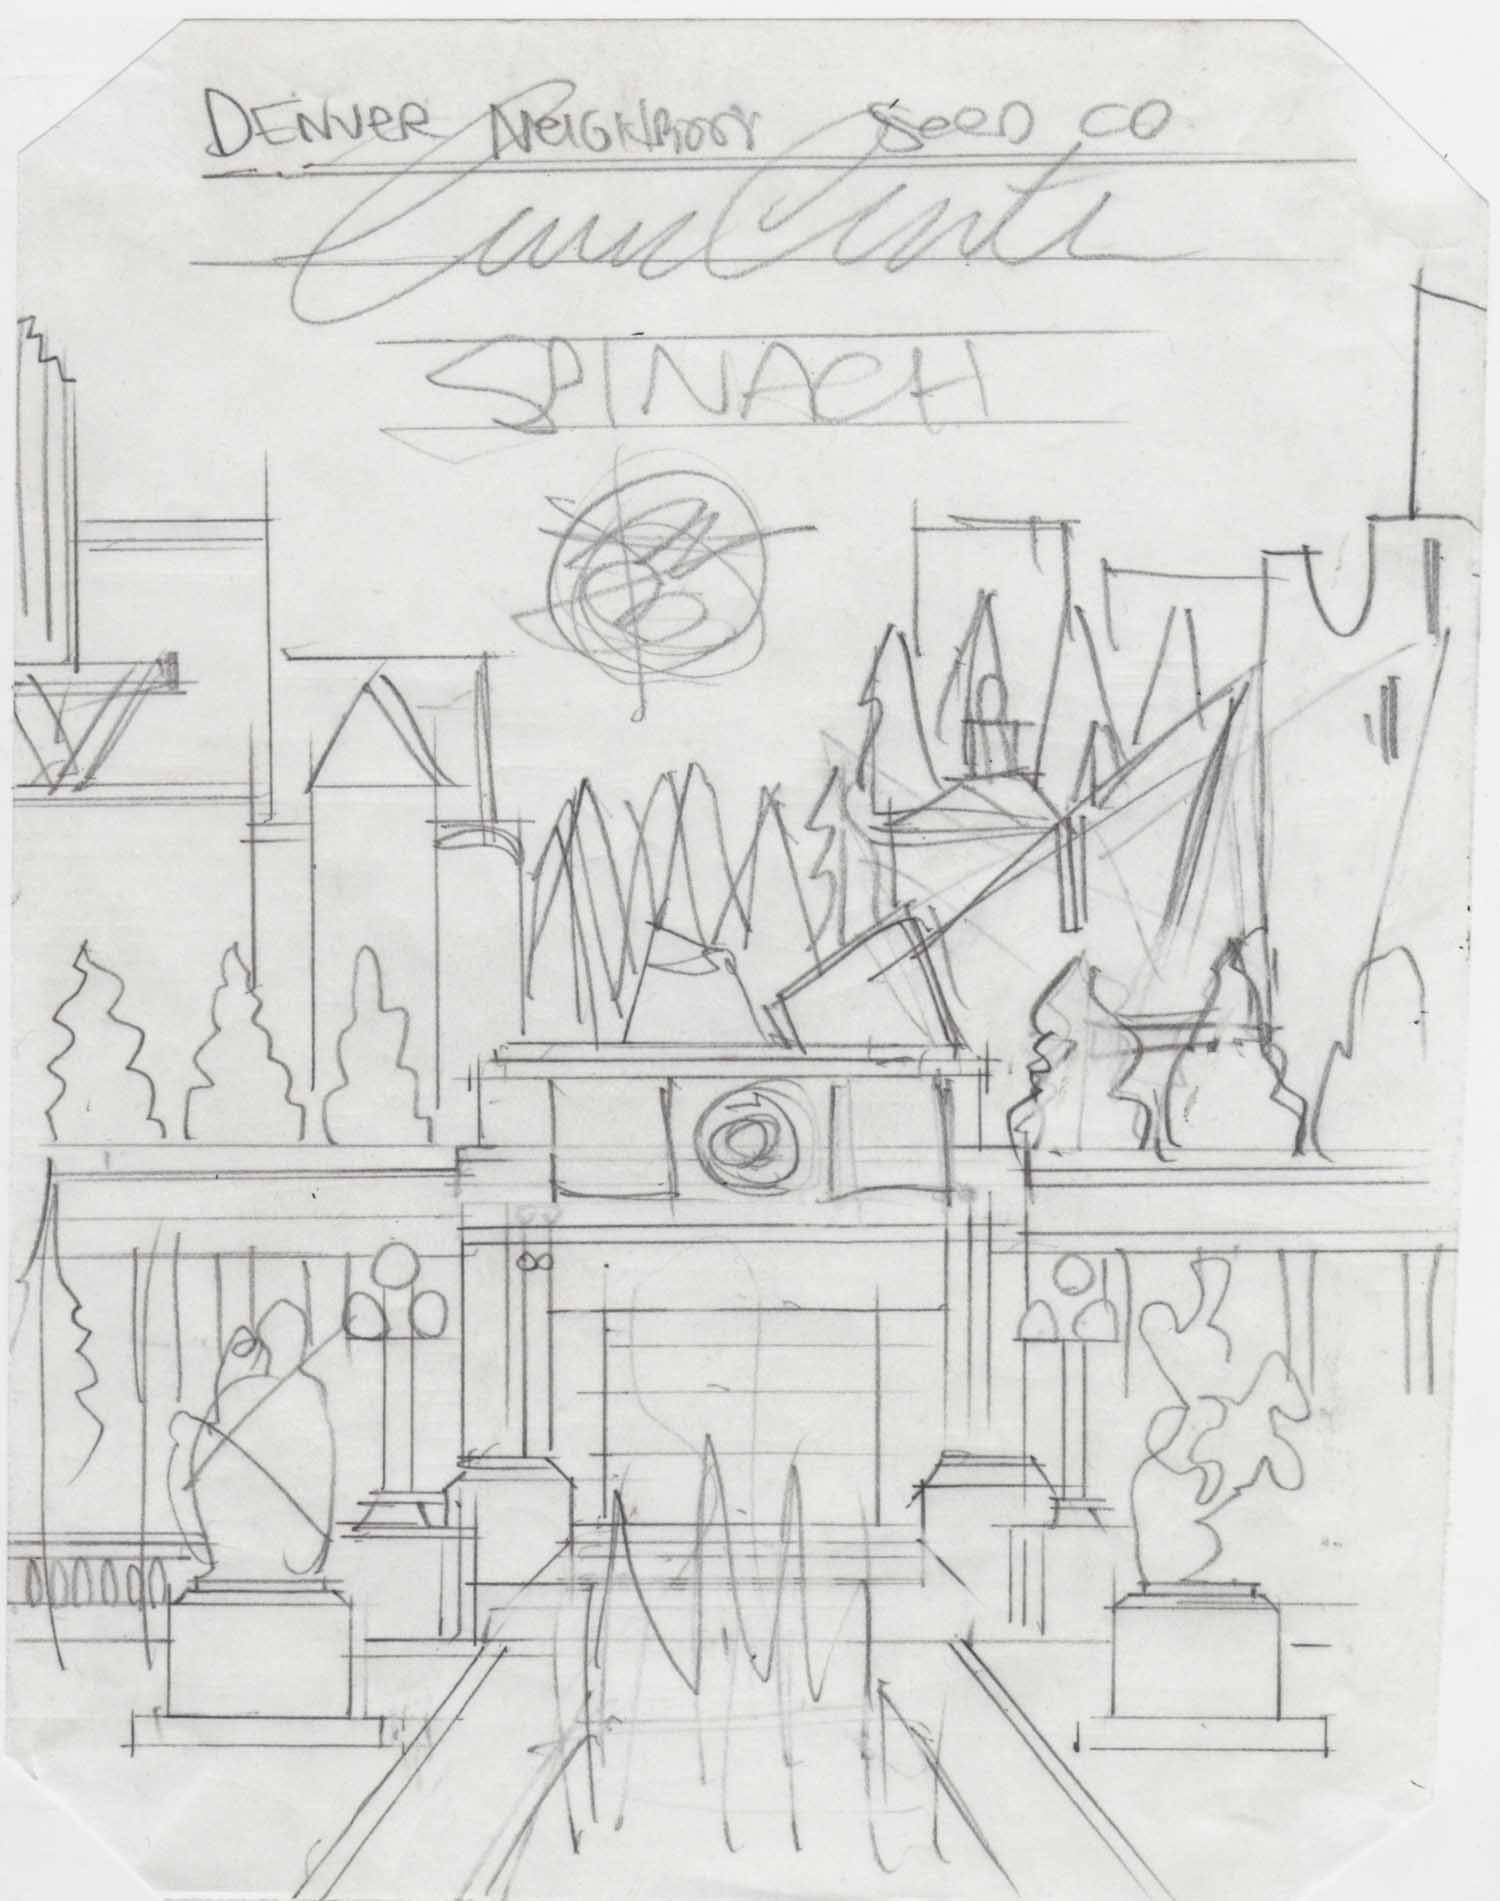 1. Civic Center Golden Triangle Spinach Denver Neighborhood Seed Company Kenny Be Art & Design kennybe.com Original Sketch.jpg